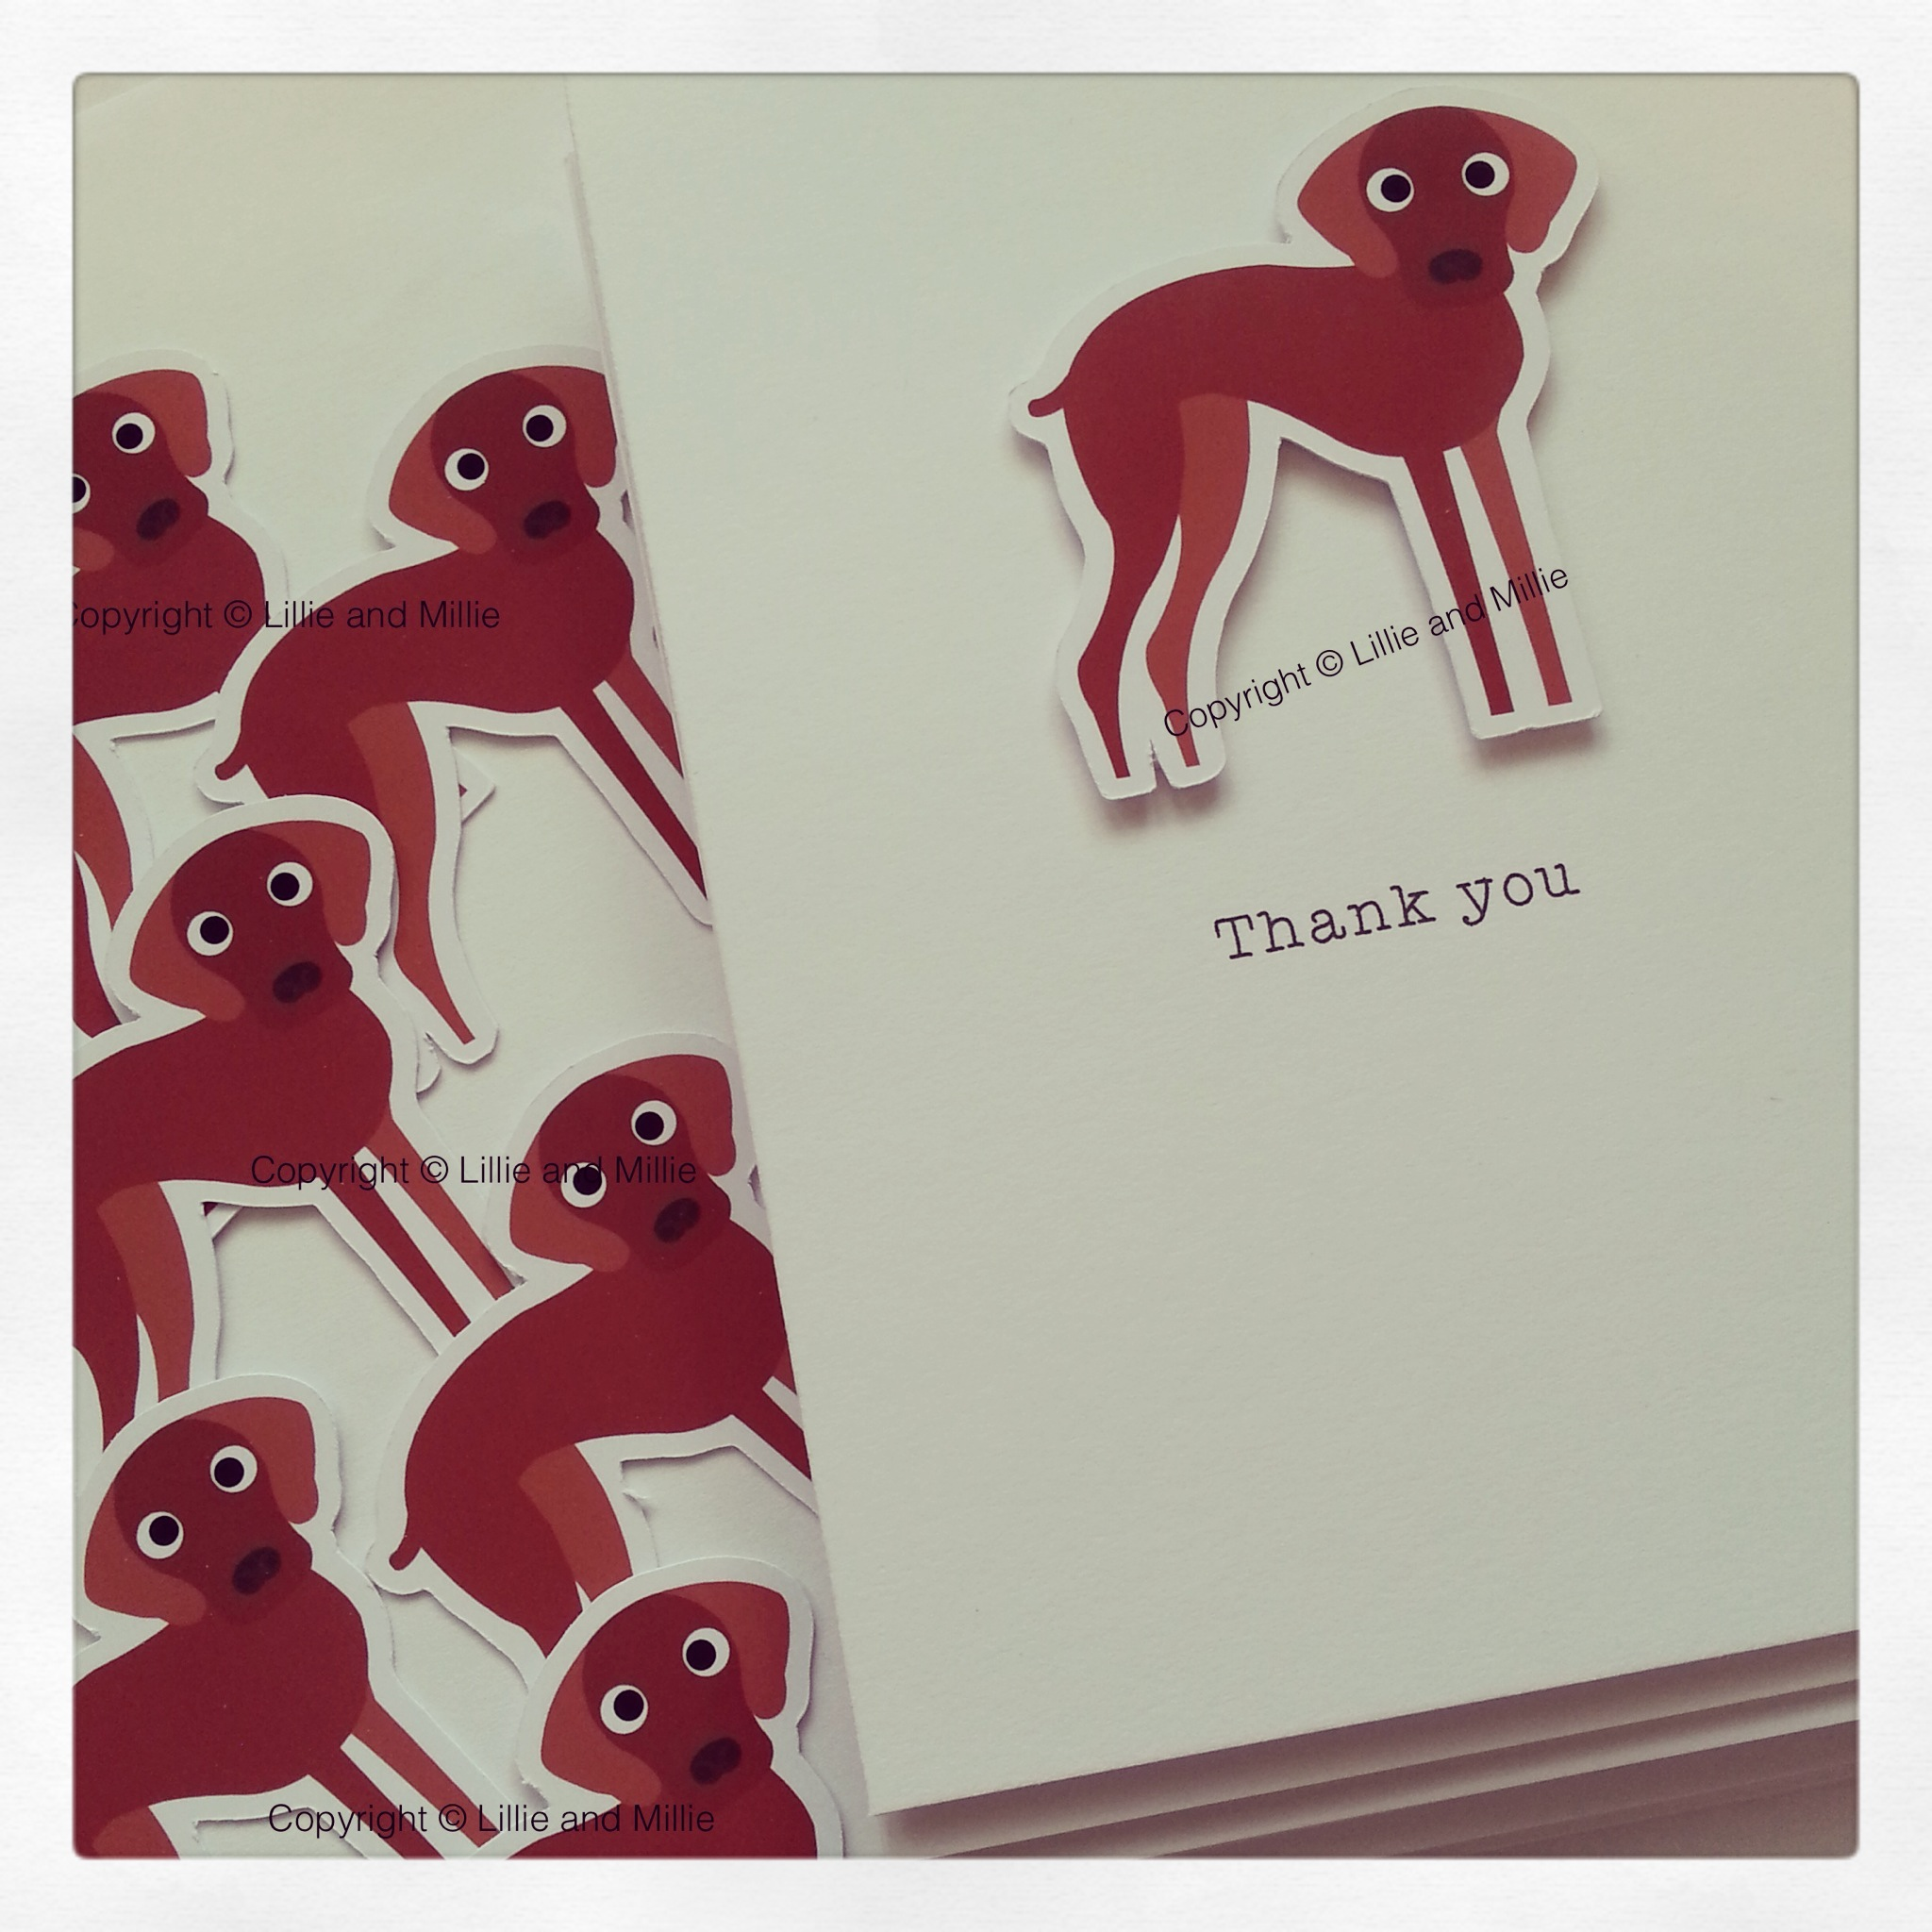 CUTE AND CUDDLY VIZSLA DOG GREETINGS CARD